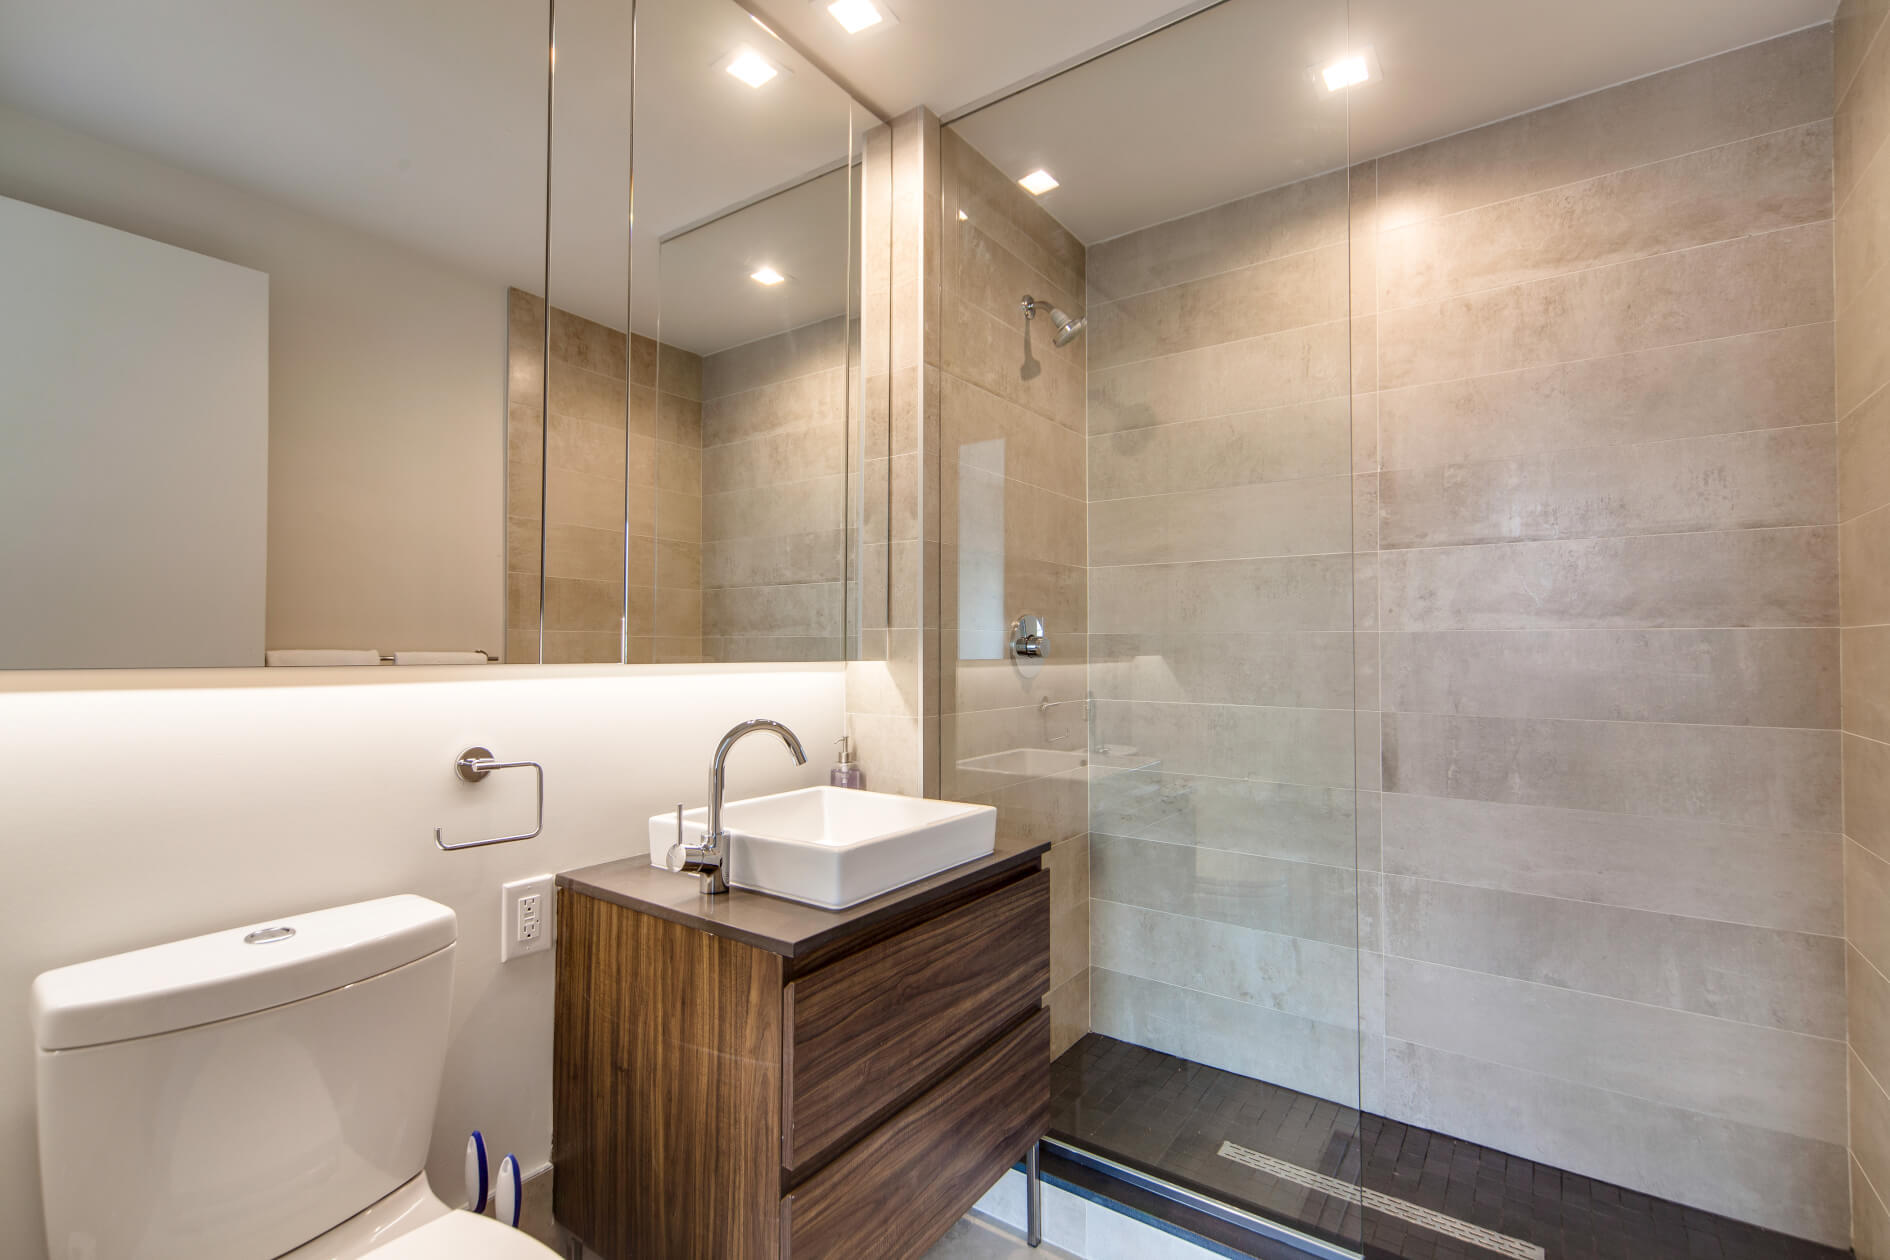 Two bedroom apartments all have two private bathrooms as well at Common Baltic in Boerum Hill, Brooklyn.